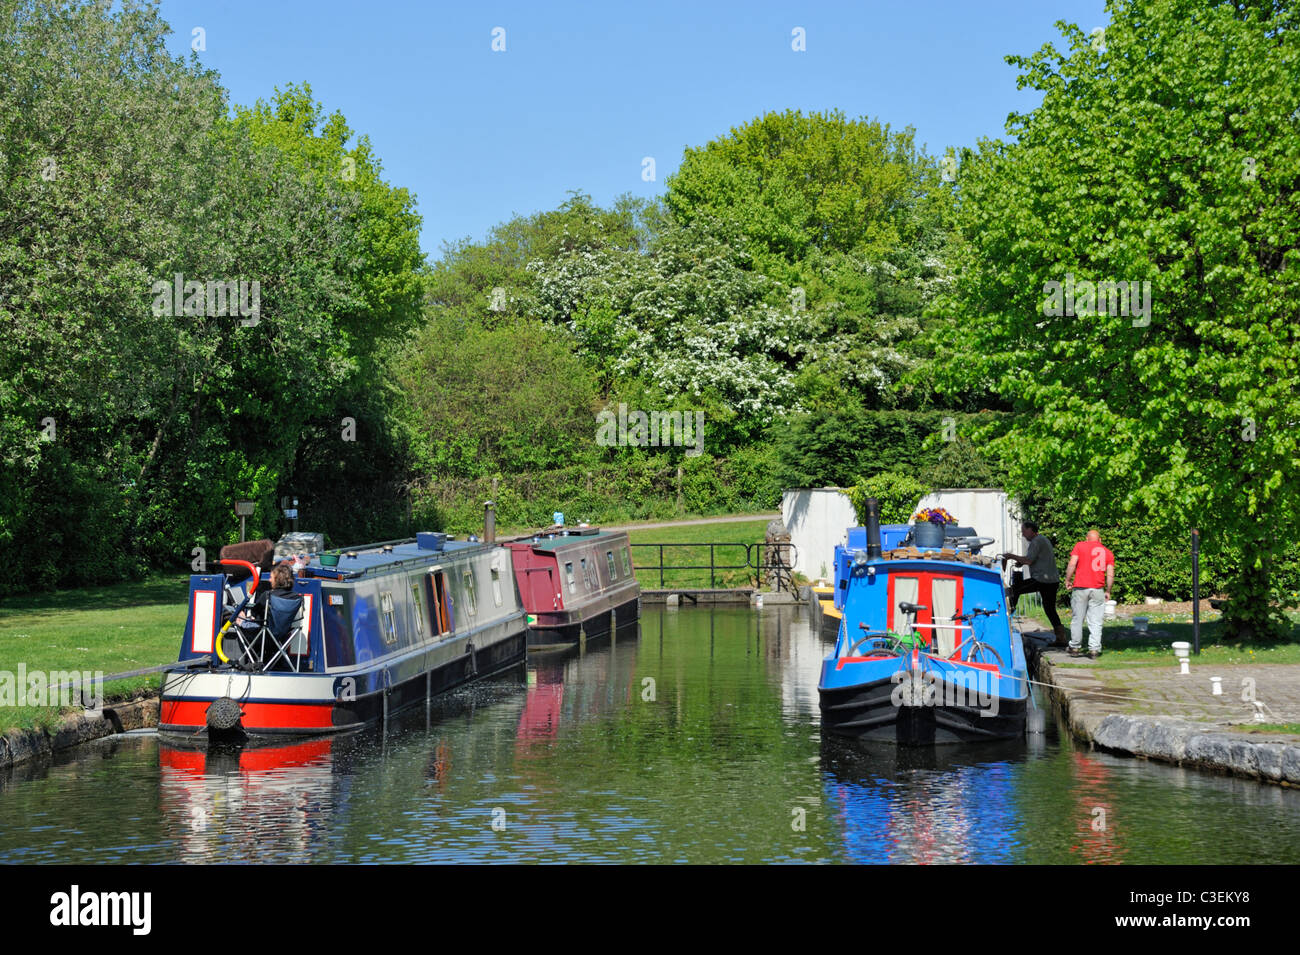 termination-of-the-southern-reach-of-the-lancaster-to-kendal-canal-C3EKY8.jpg